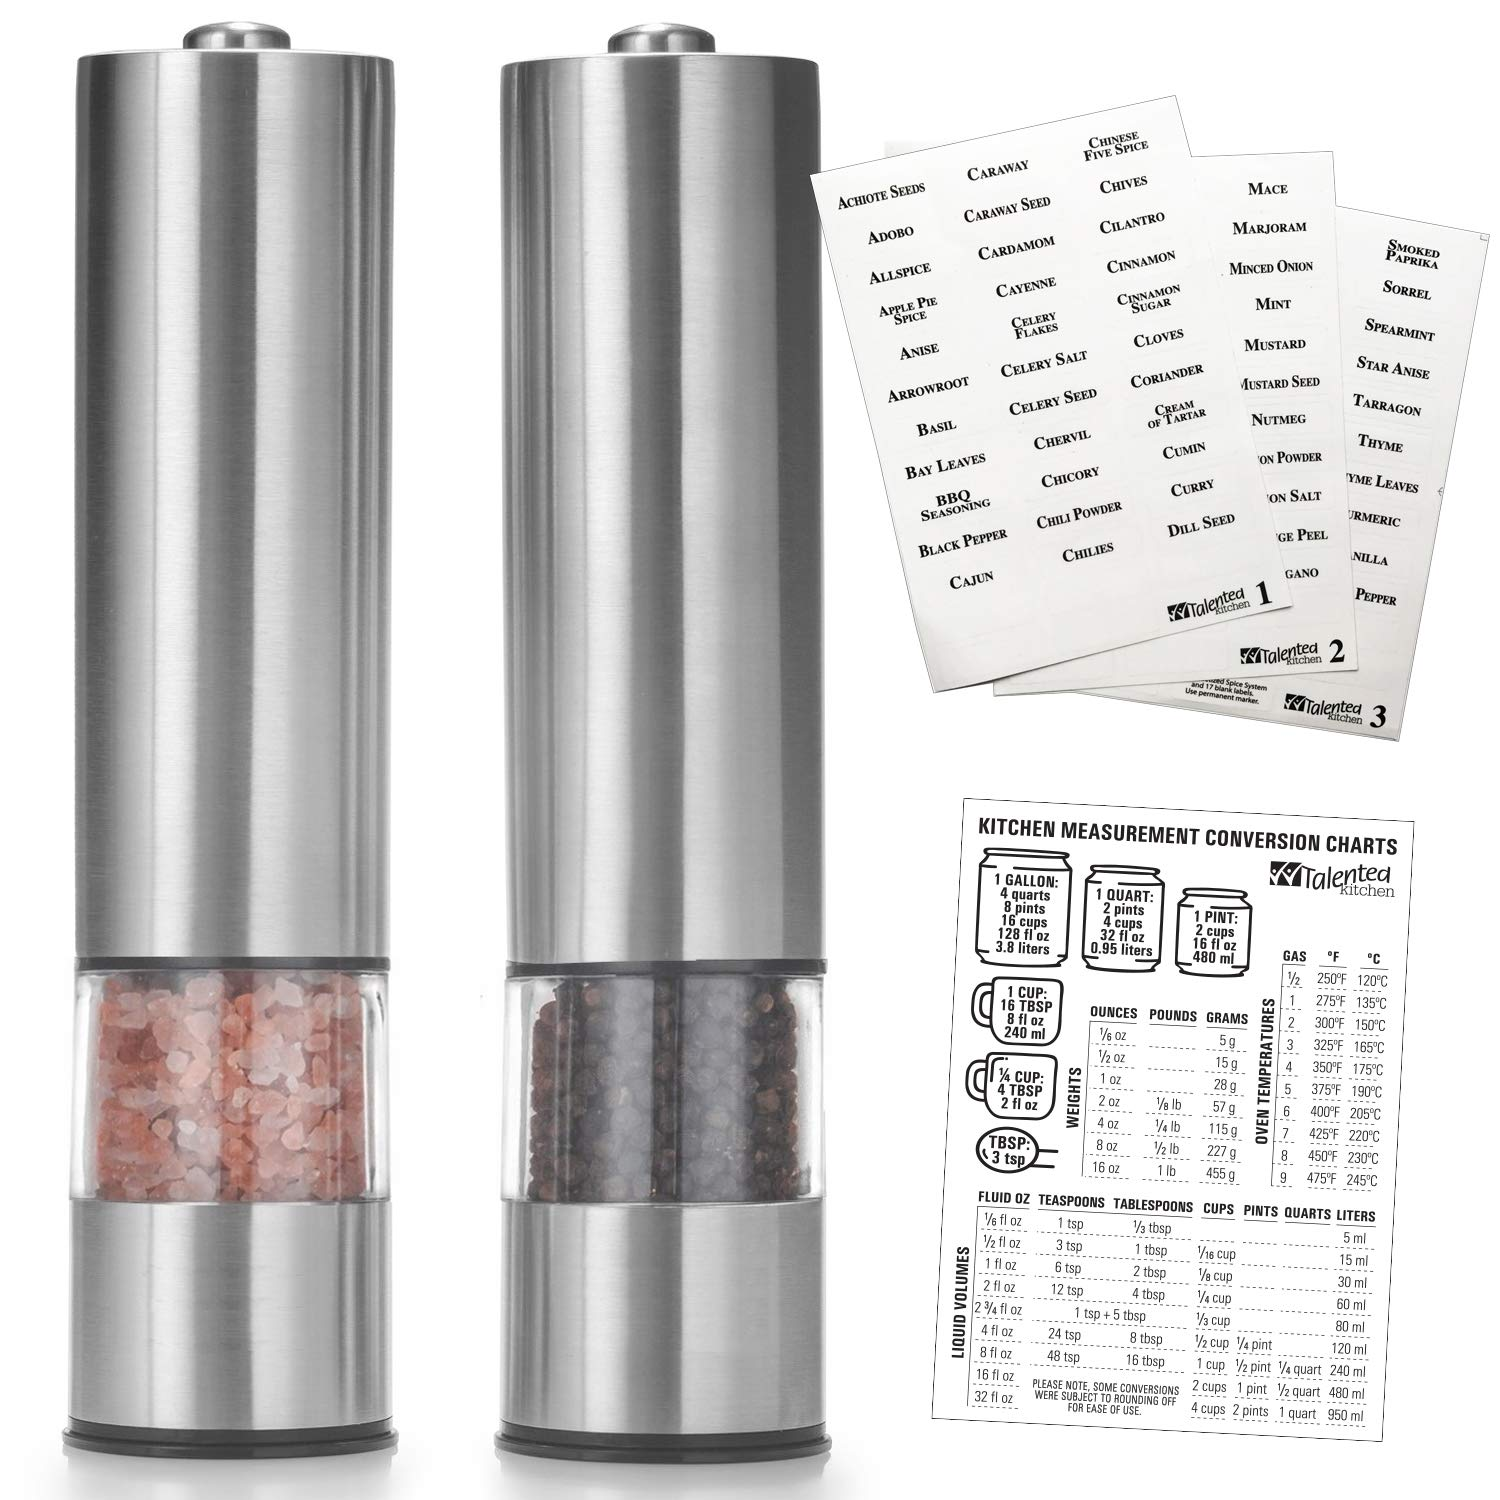 Set of 2 salt pepper mill electric grinders measuring kitchen chart spice label set by talented kitchen heavy duty brushed stainless steel spices